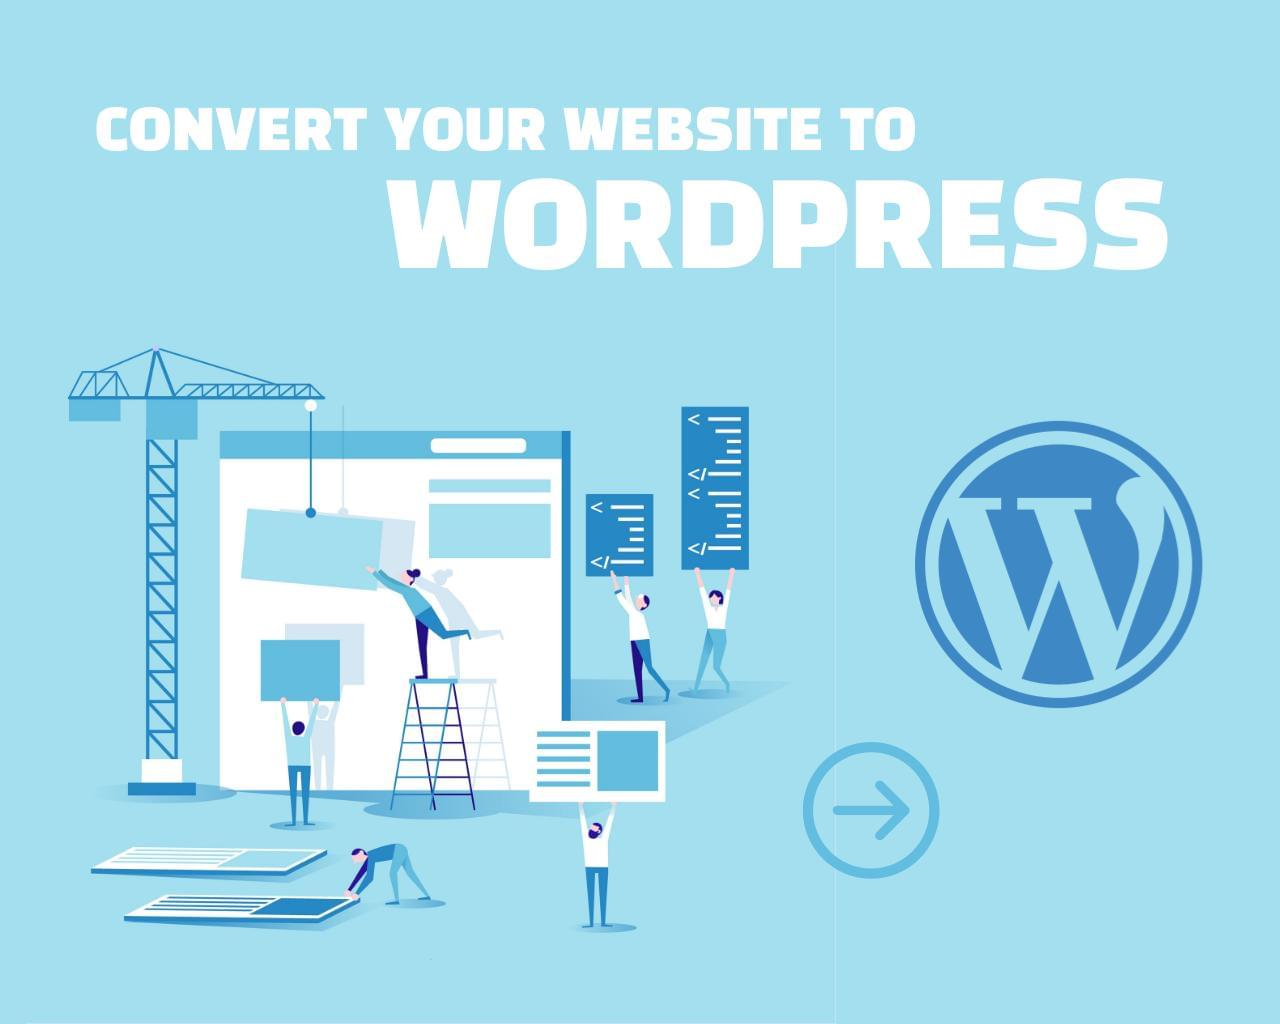 Convert Your Website To WordPress by egemenerd - 113542